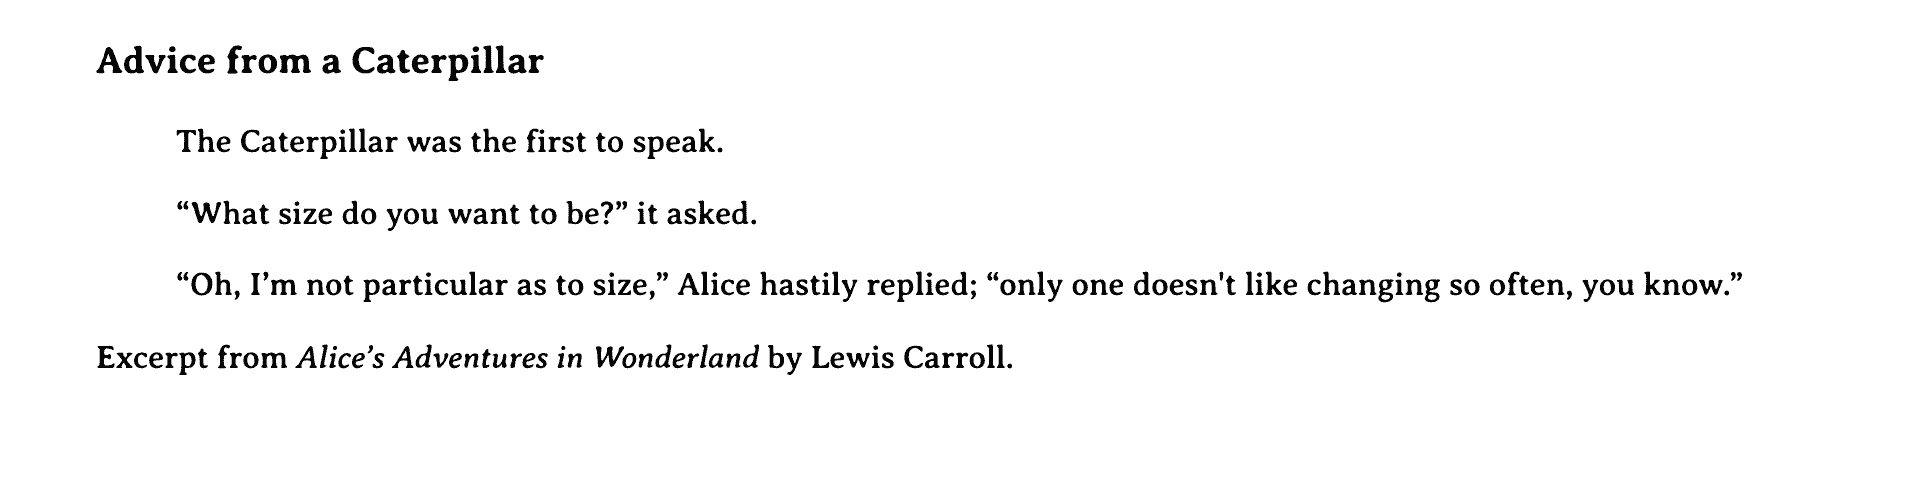 Text selection in a custom serif font with an old typeset style in black with a larger, bold header, an indented quotation, and citation of the quote.